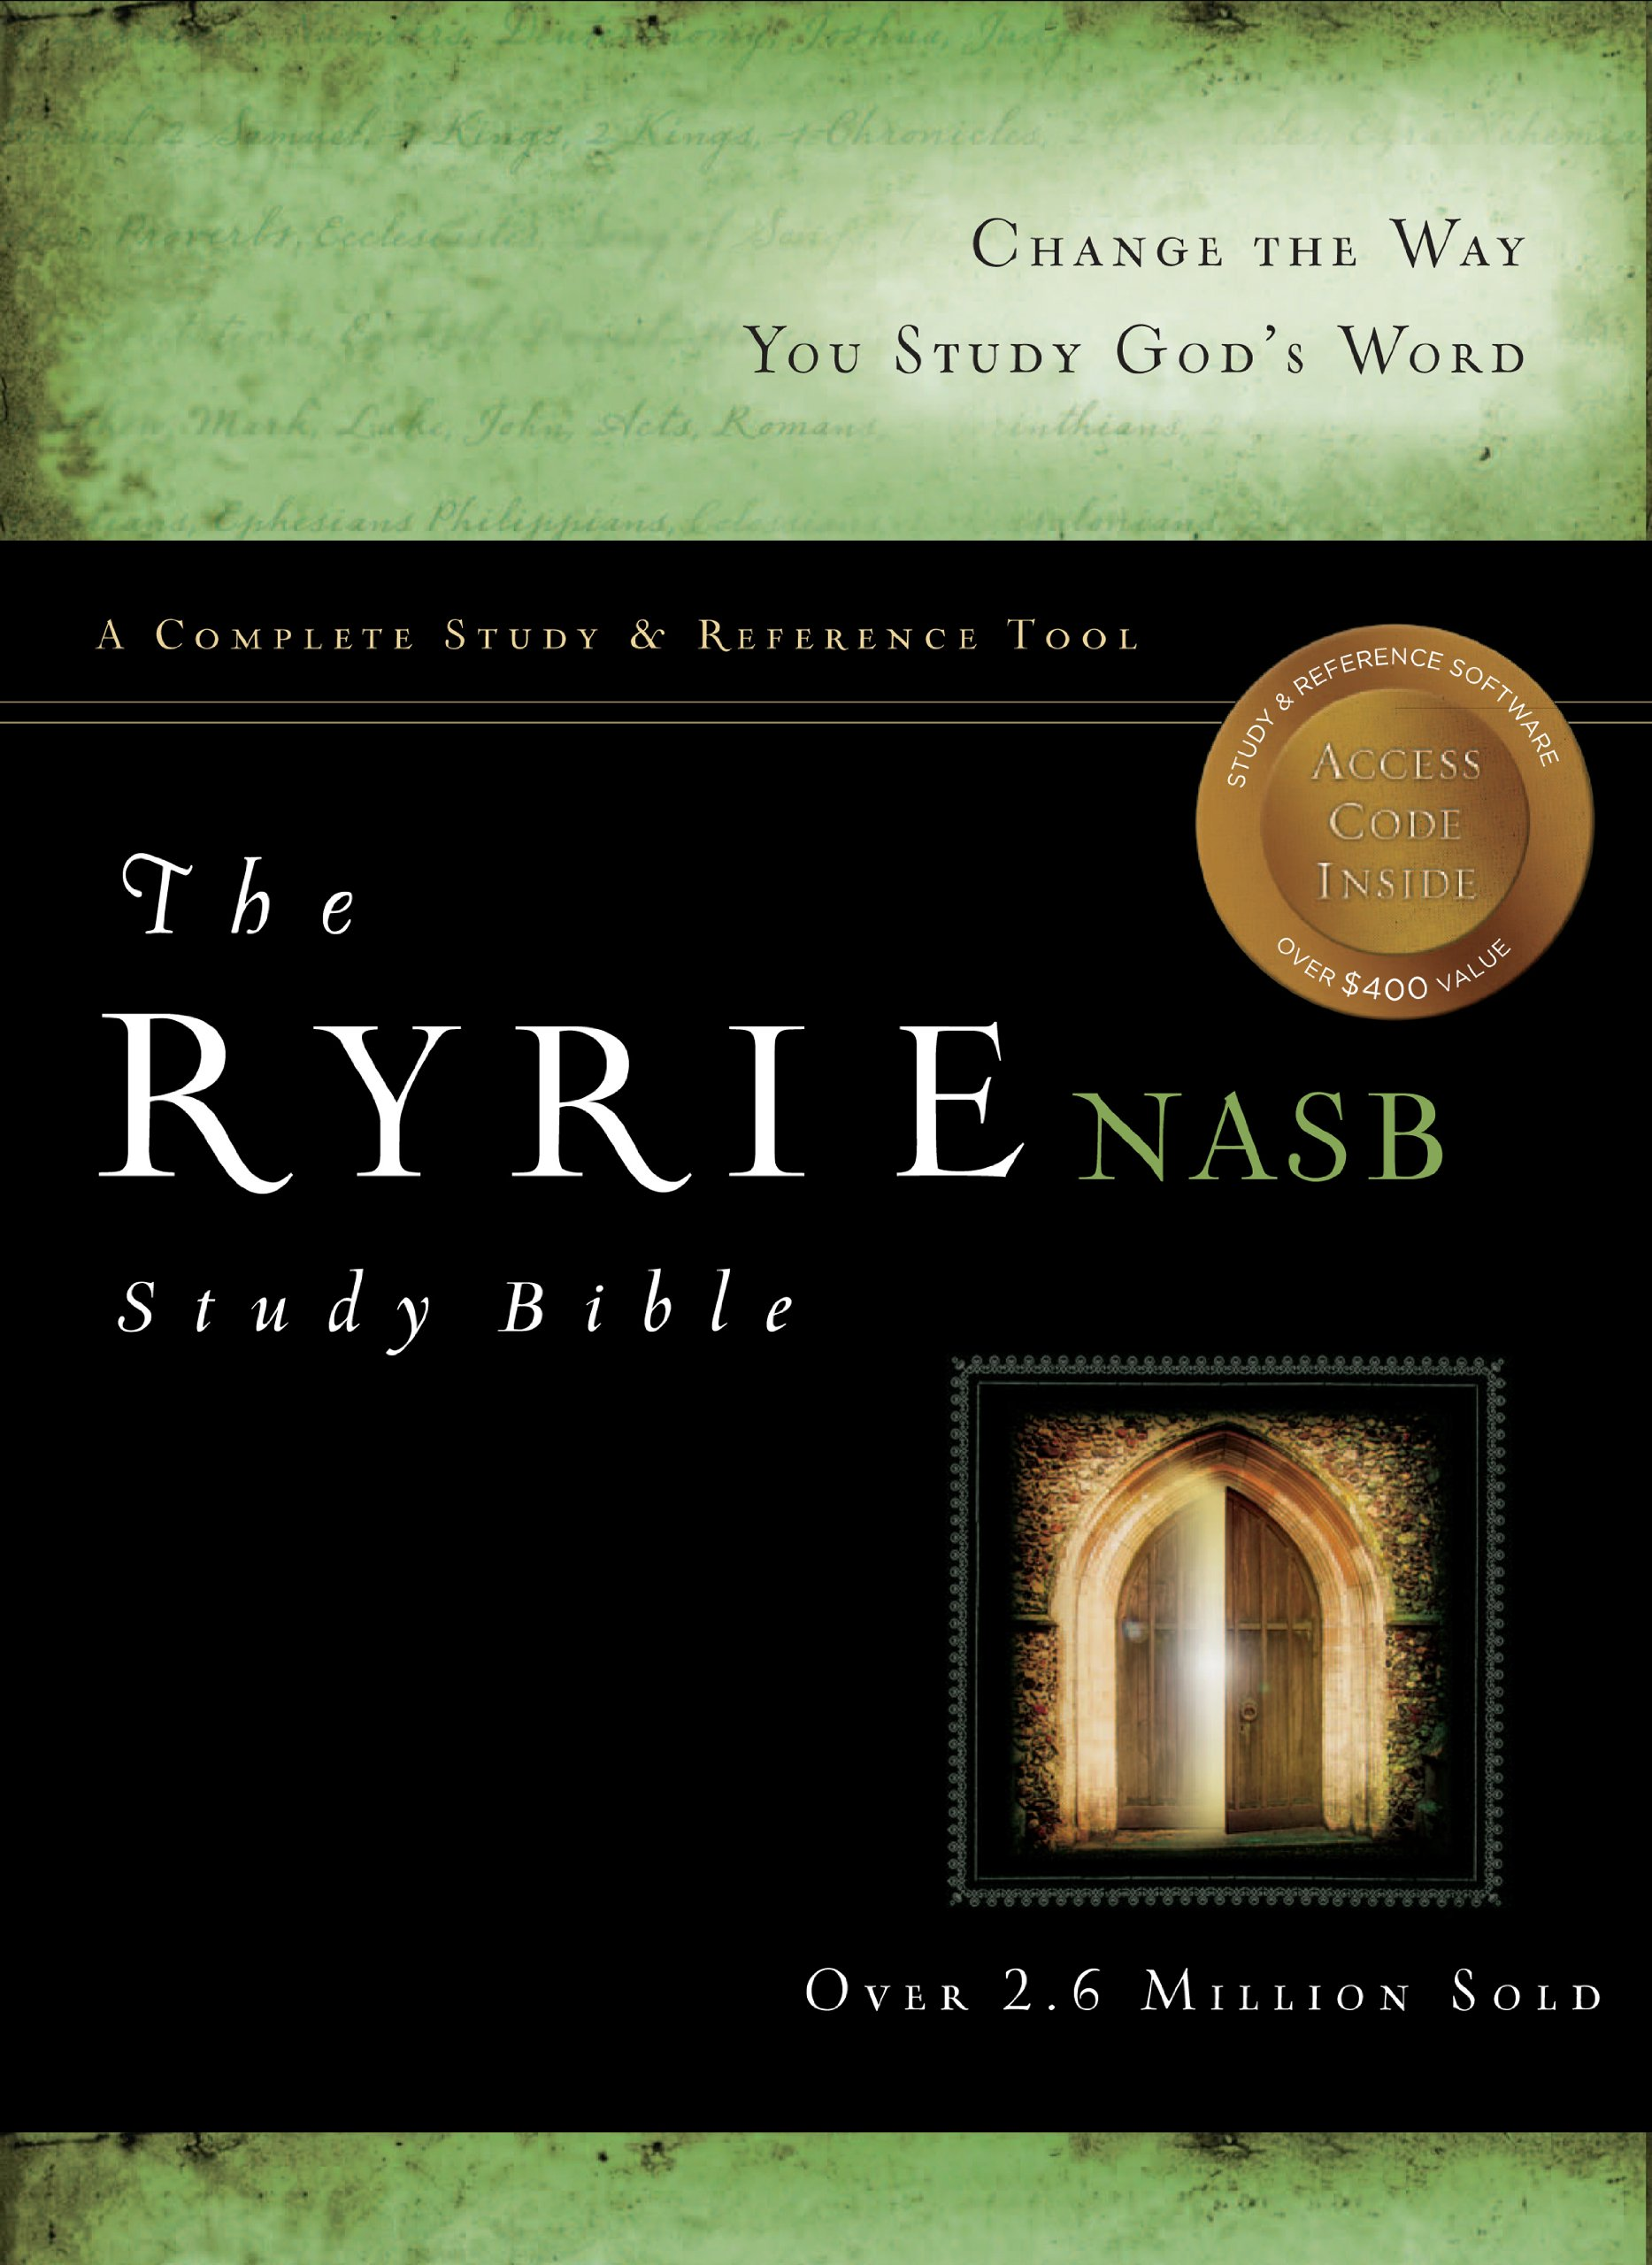 The Ryrie NAS Study Bible Bonded Leather Burgundy Red Letter (Ryrie Study Bibles 2012)